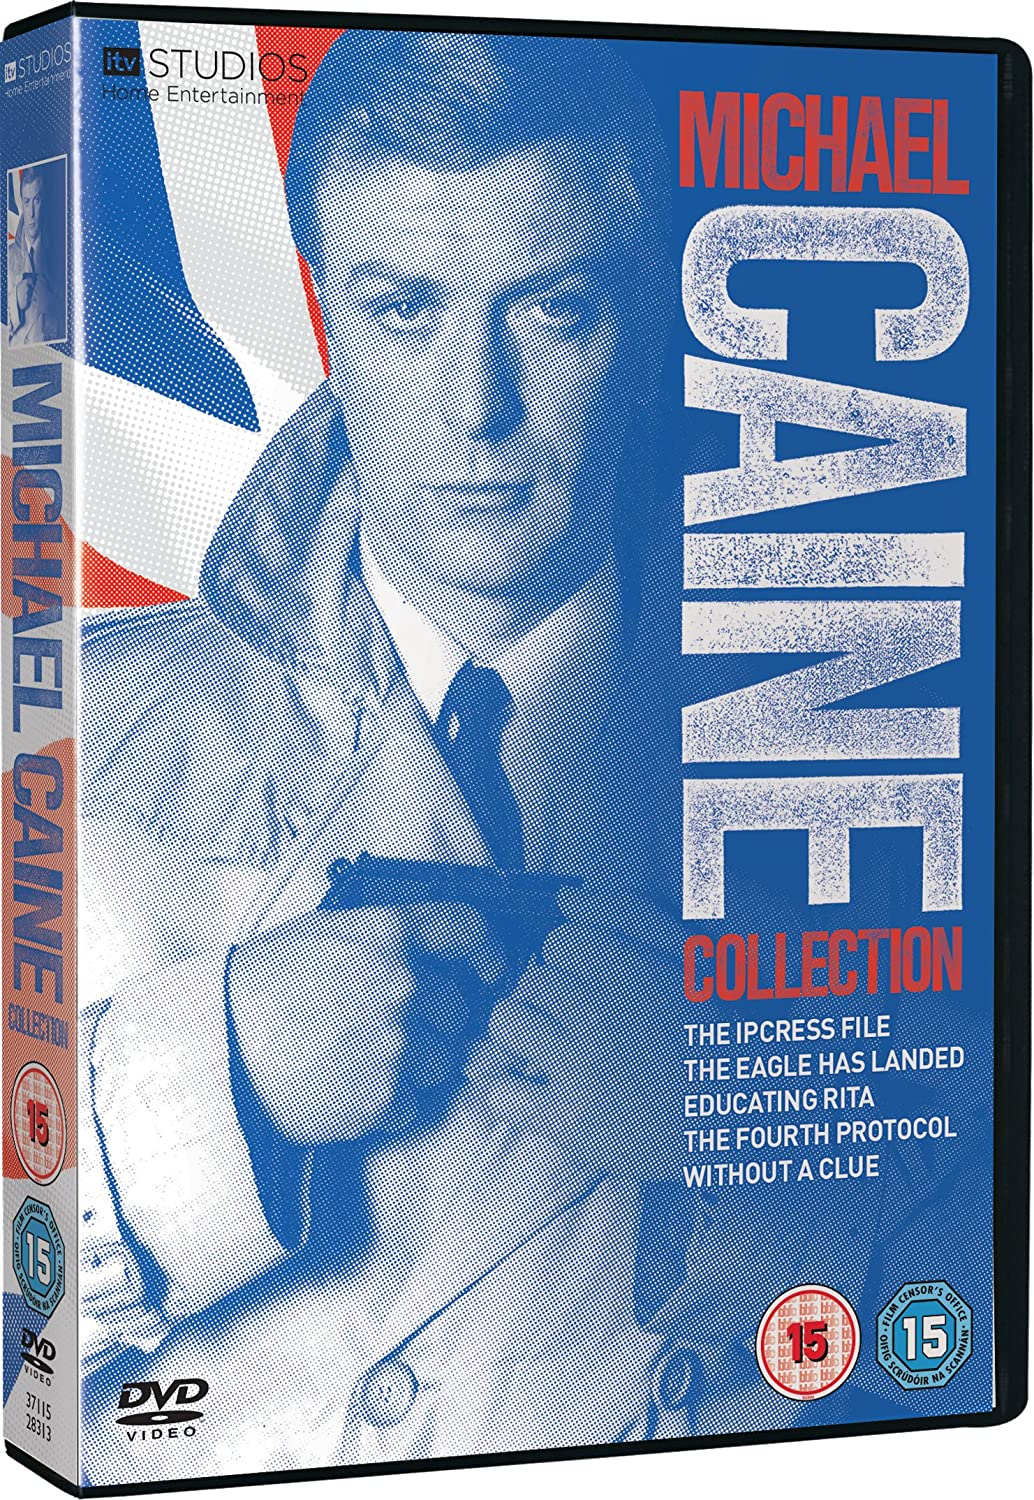 The Michael Caine Collection [DVD]: Amazon.co.uk: Michael Caine ...